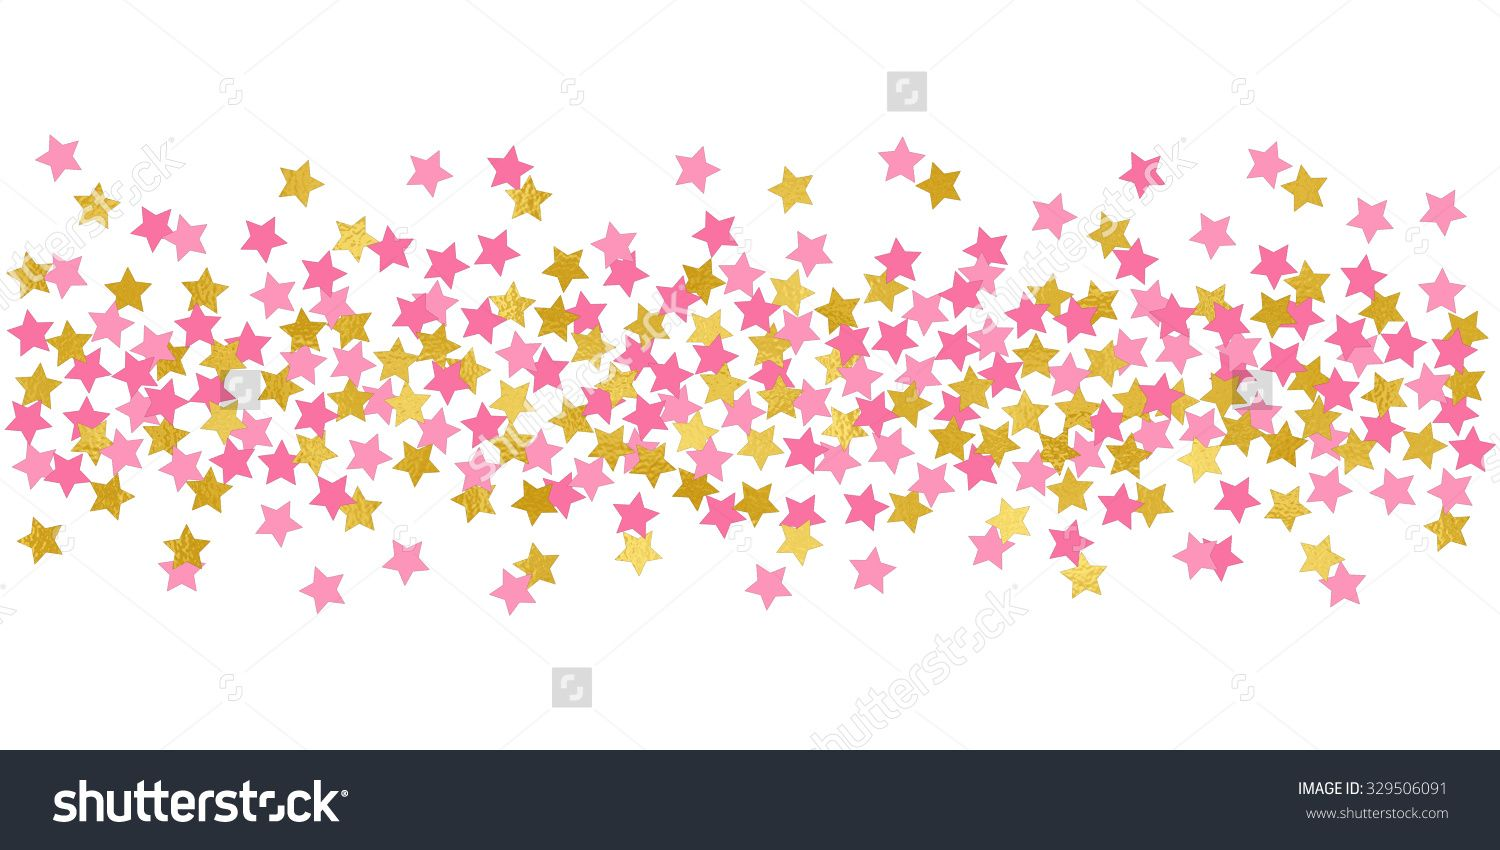 Large Stars Pink And Gold Confetti Border Illustration Bright